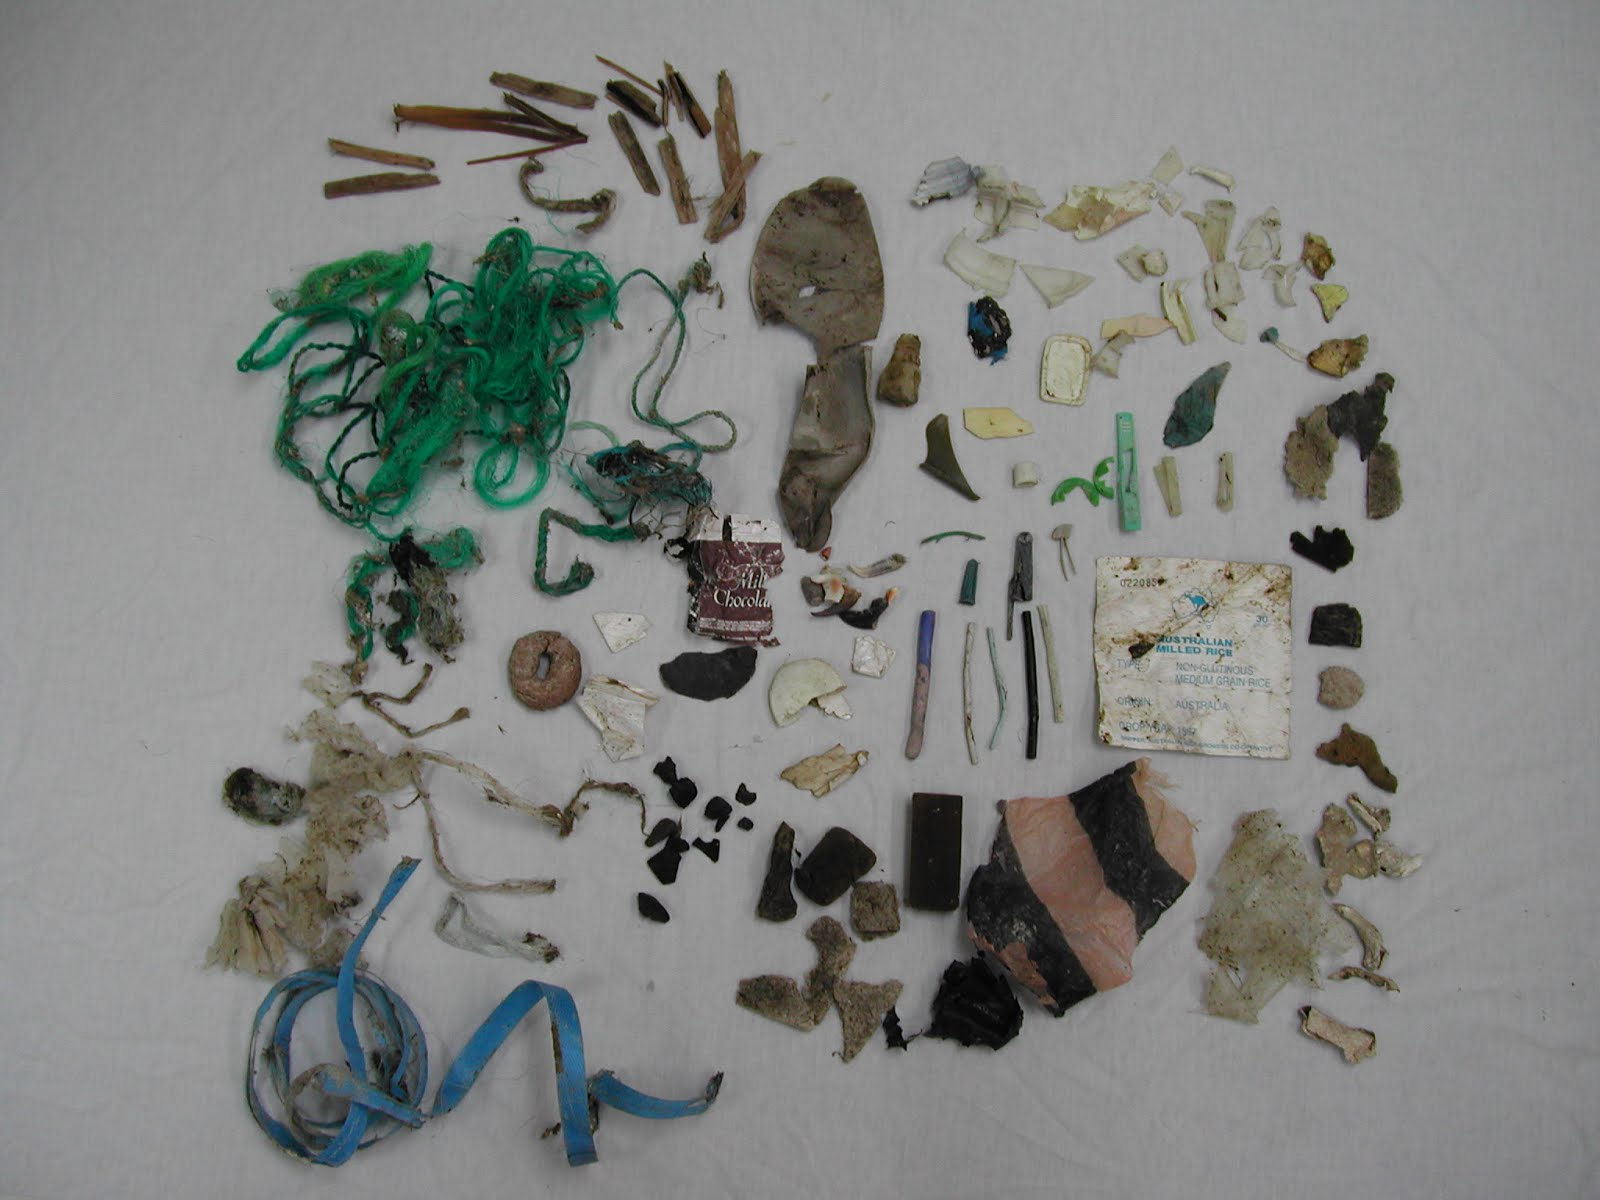 trash from the stomach of a loggerhead turtle